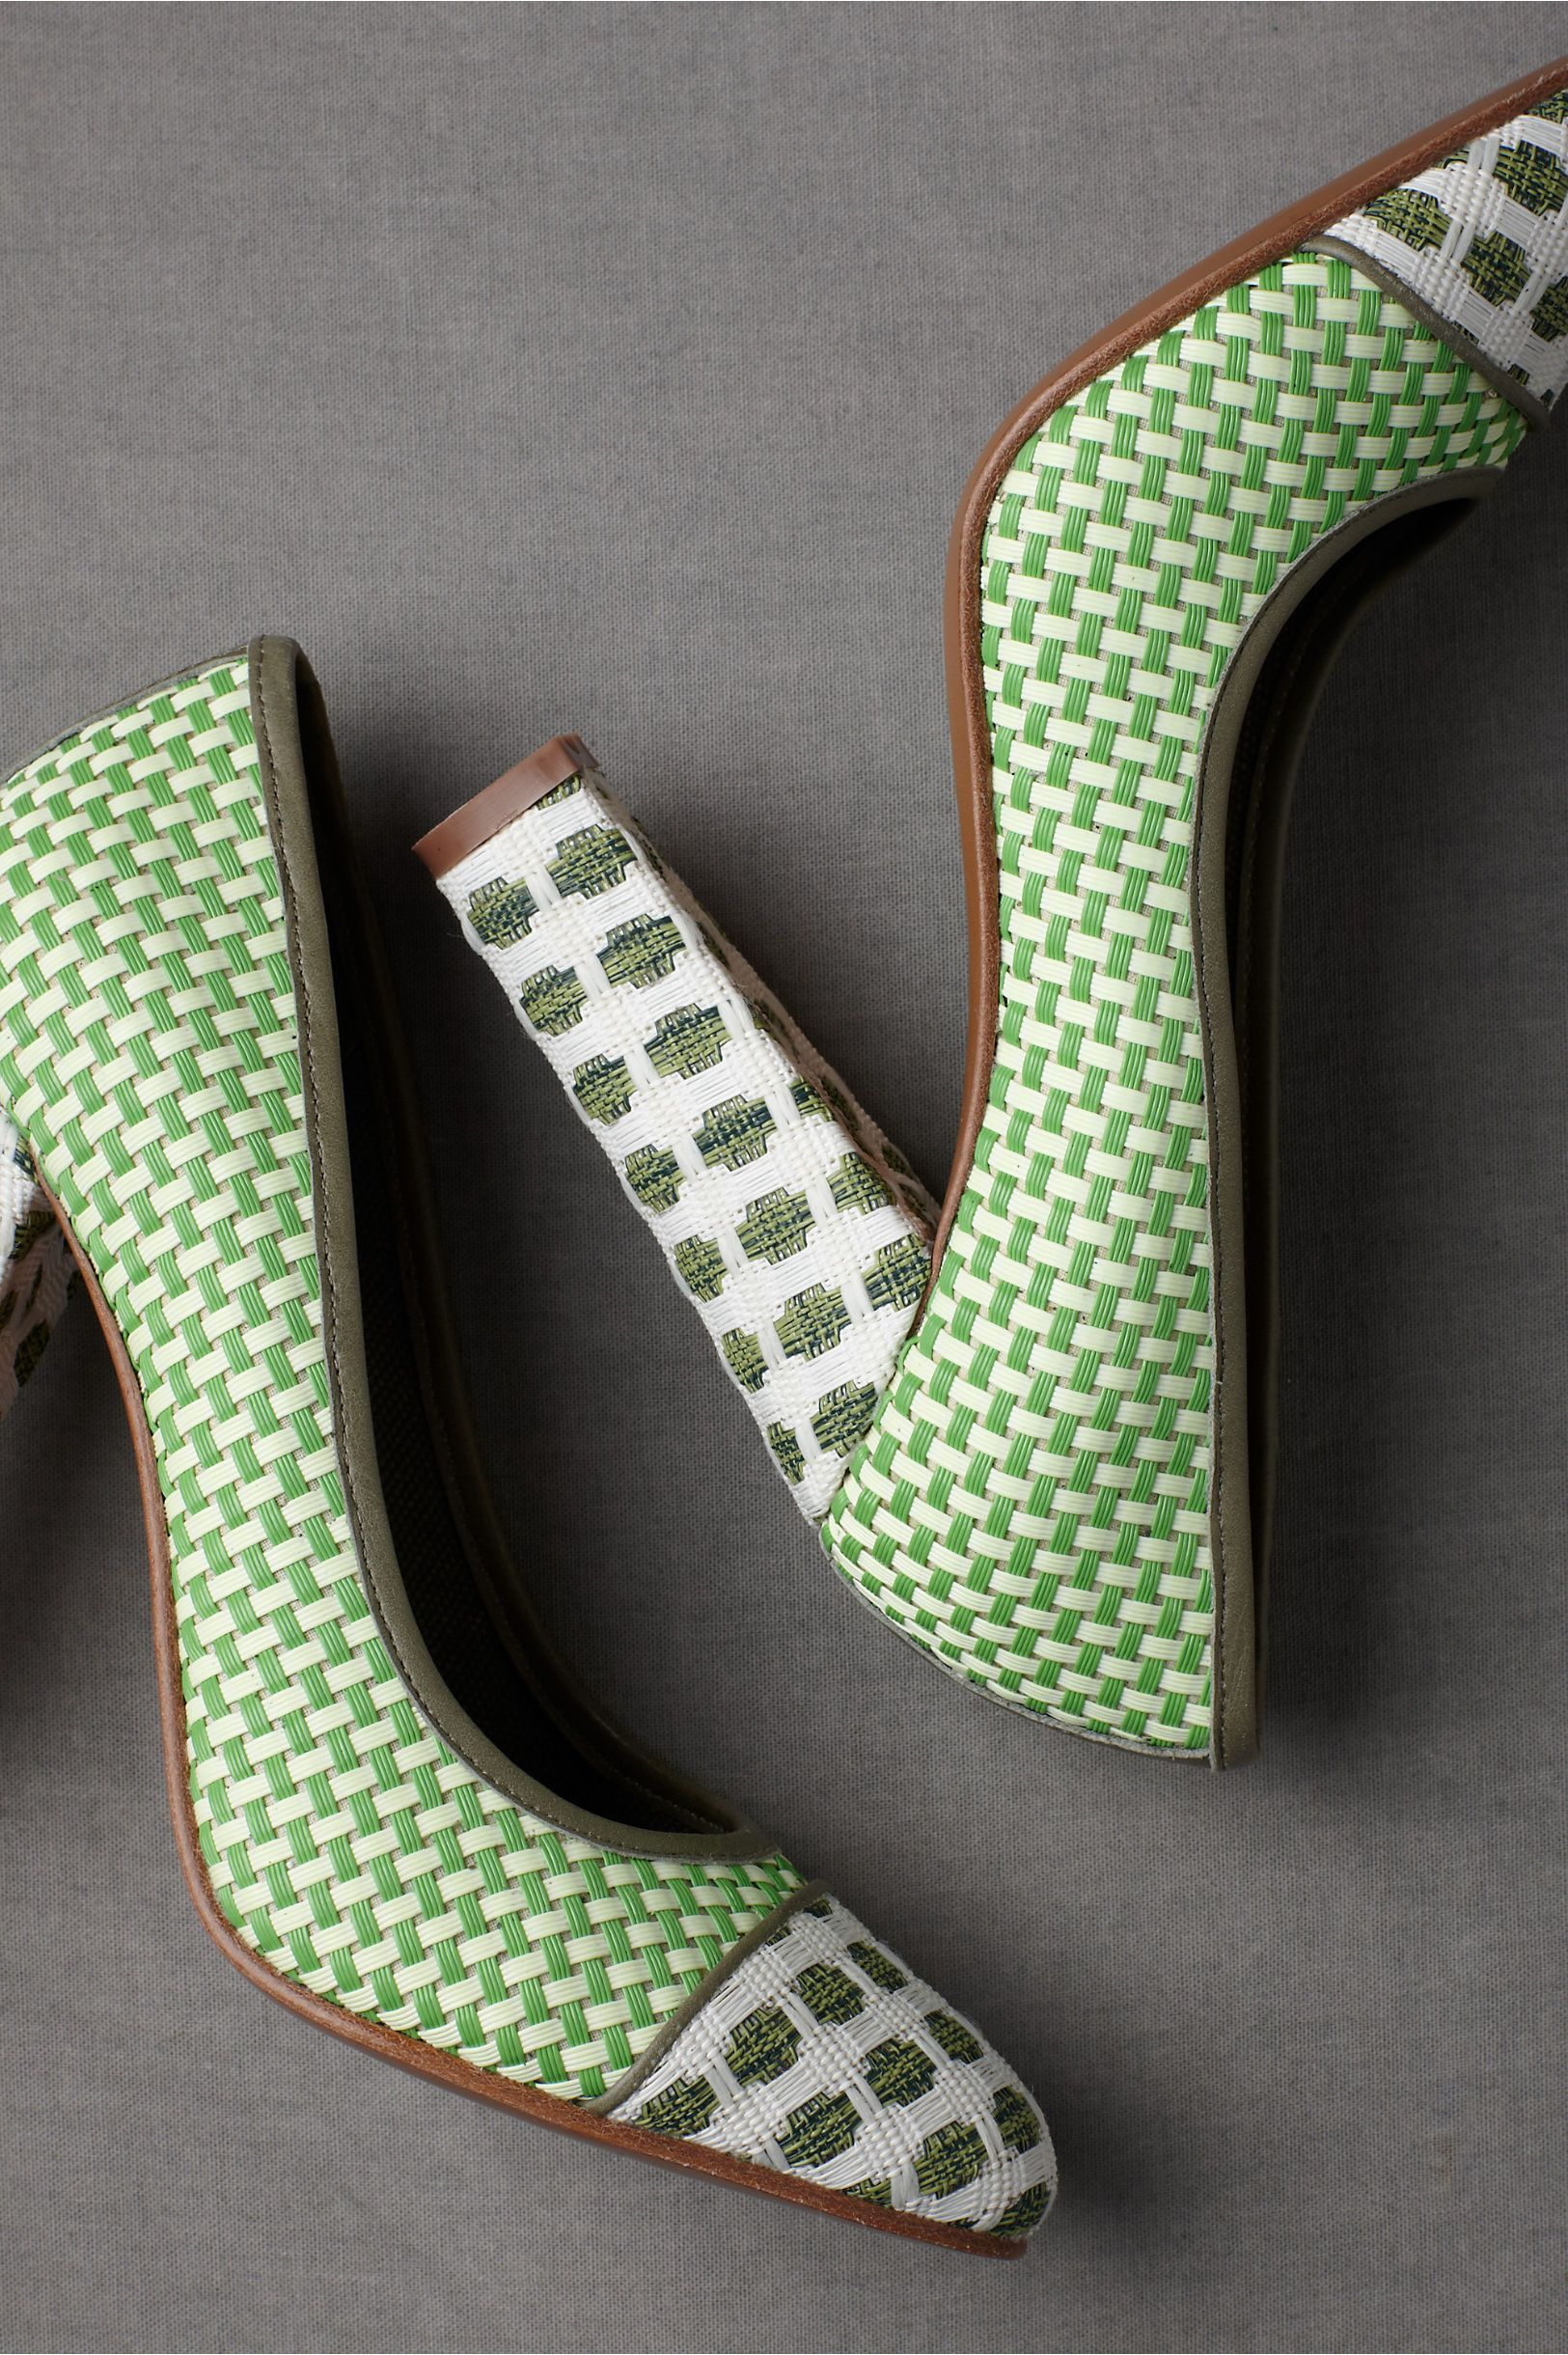 Topiary Pumps from BHLDN